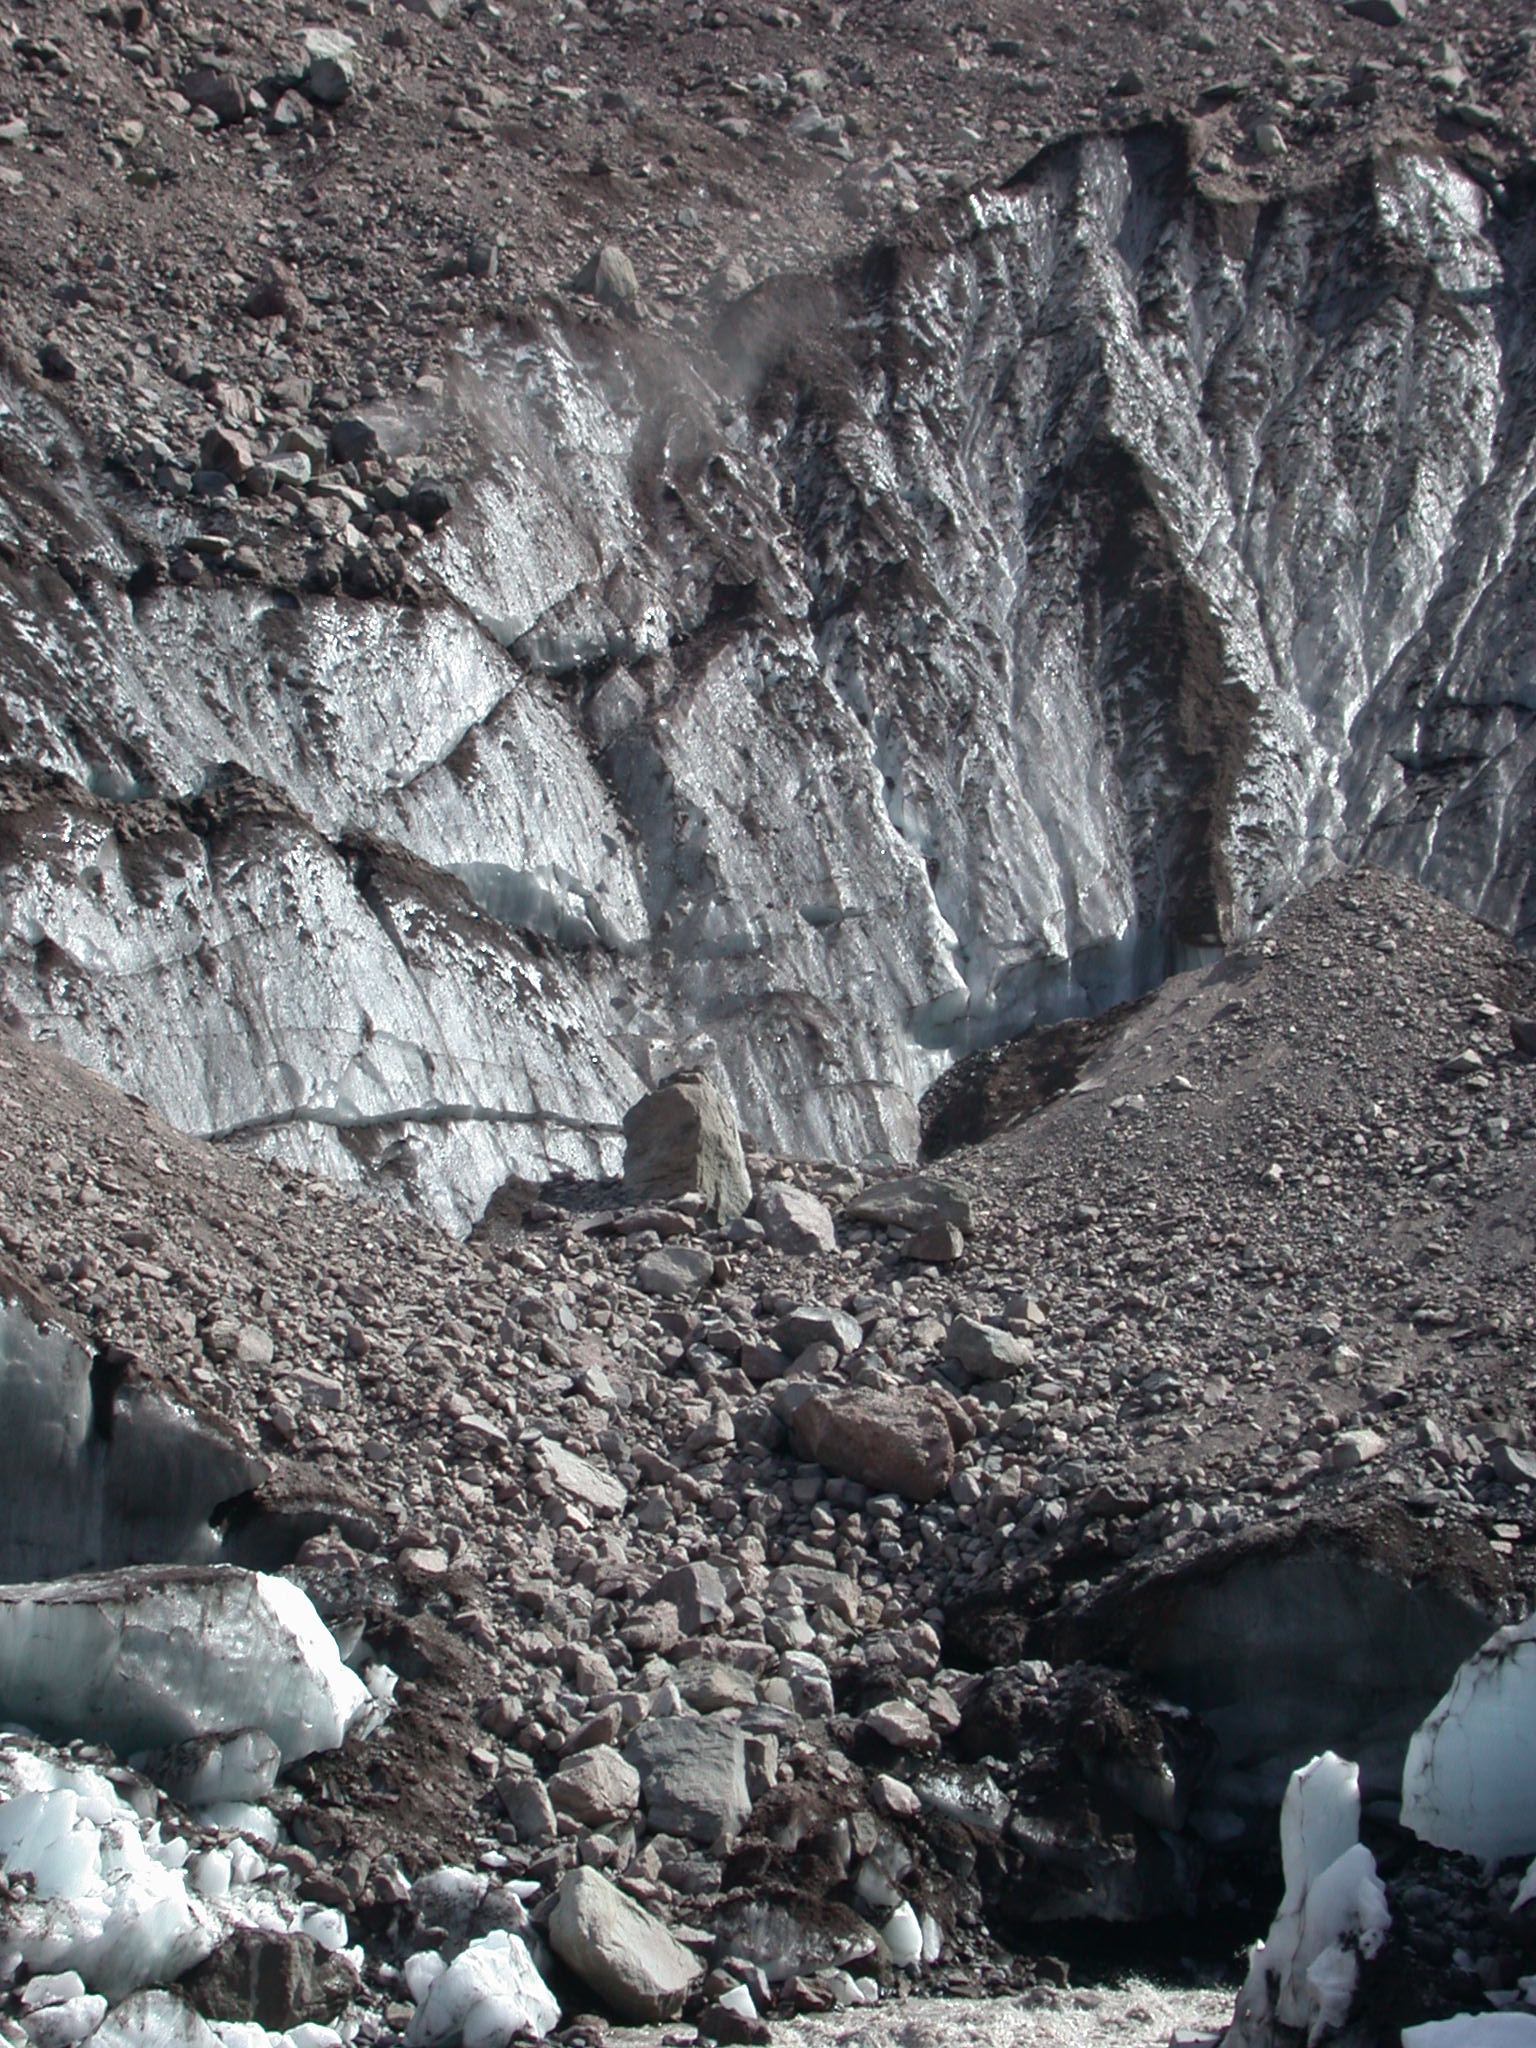 Glacier and Tumbling Debris on Mount Rainier